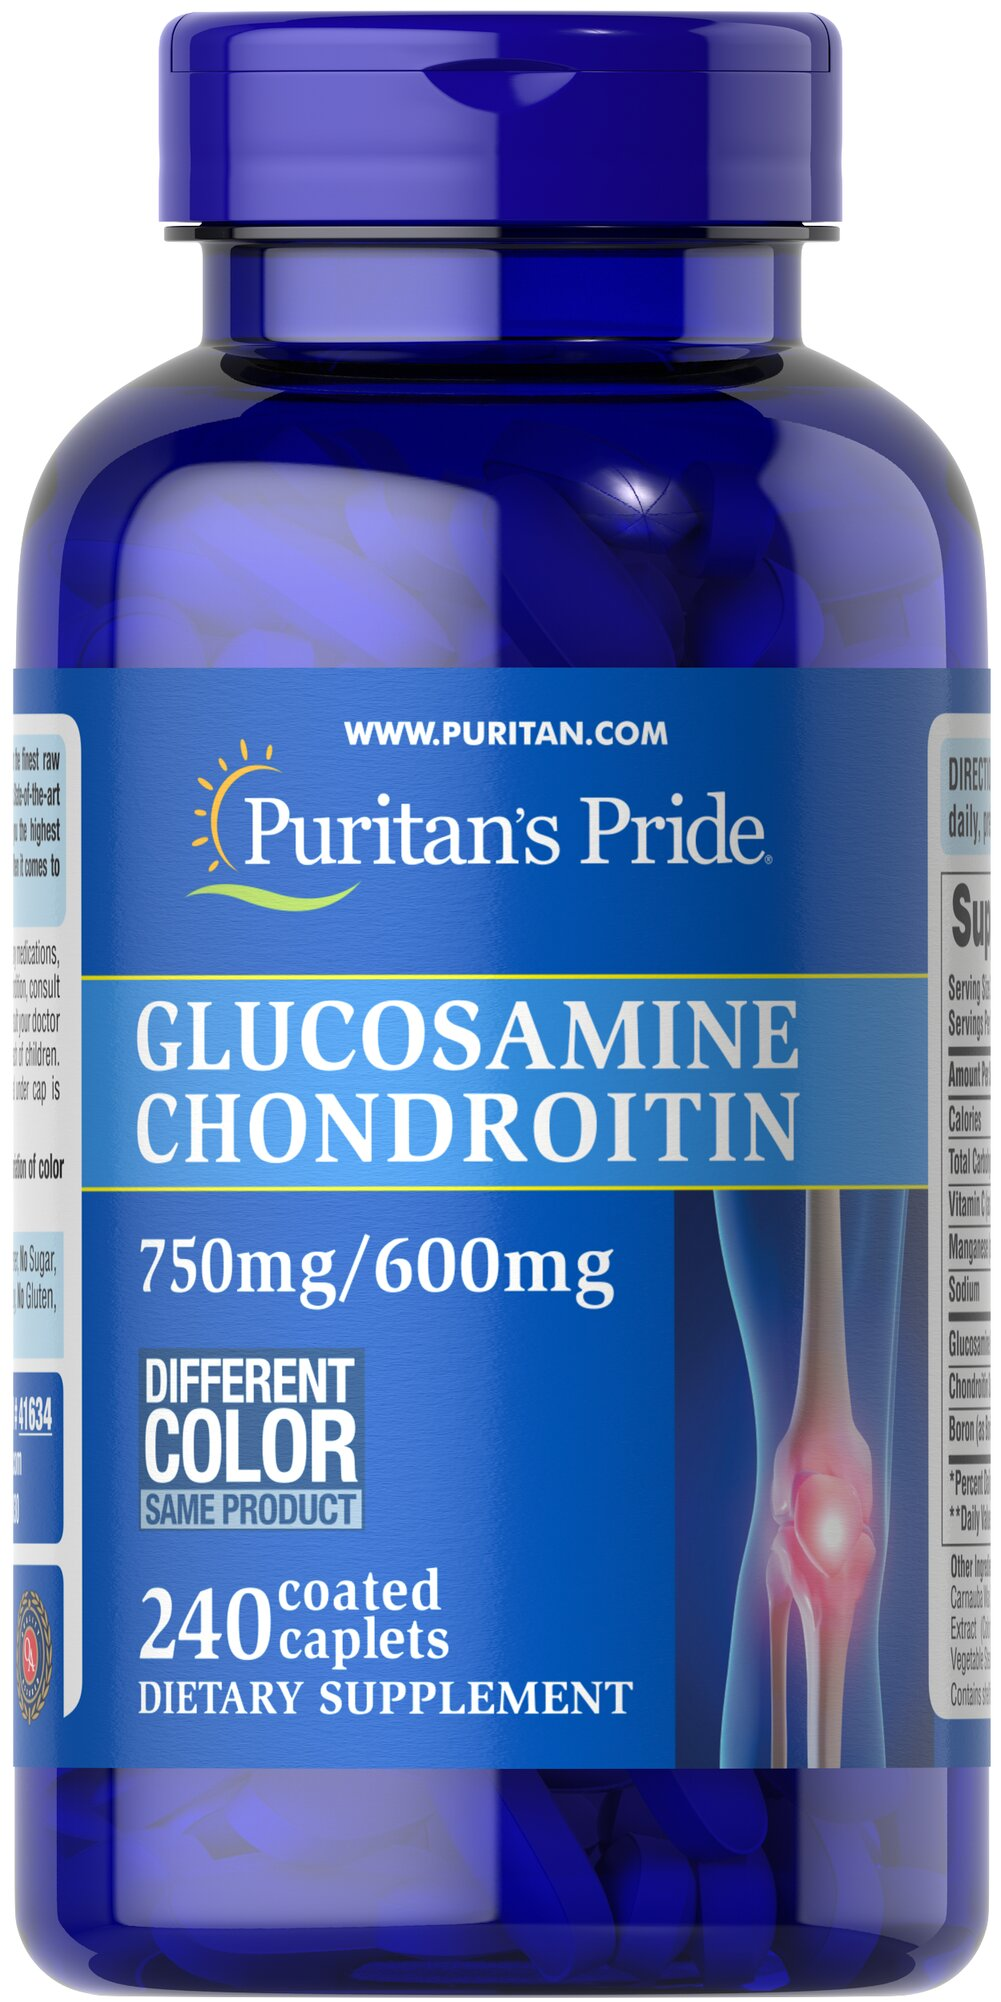 Triple Strength Glucosamine Chondroitin 750 mg/600 mg <p>Glucosamine is a key structural component in cartilage and acts as a lubricant**</p> <p>Chondroitin acts as a lubricant and is an important molecular component of glycosaminoglycans**</p> <p>One serving of Triple Strength Glucosamine Chondroitin helps promote comfortable joint movement and two caplets provide 1500 mg Glucosamine and 1200 mg Chondroitin.</p> 240 Caplets 750 mg/600 mg $84.99